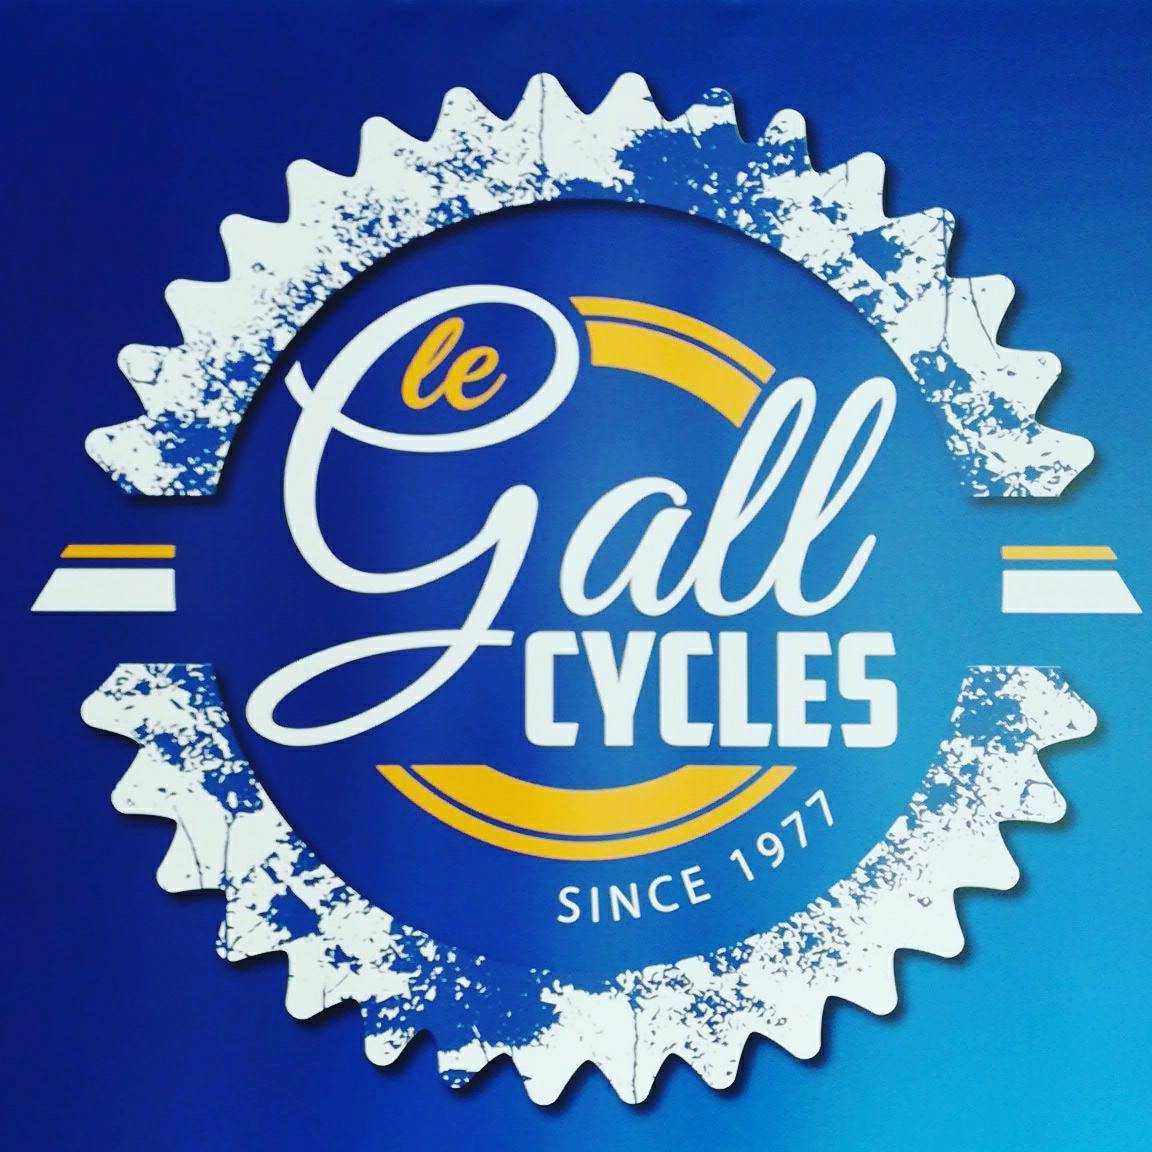 CYCLES LE GALL